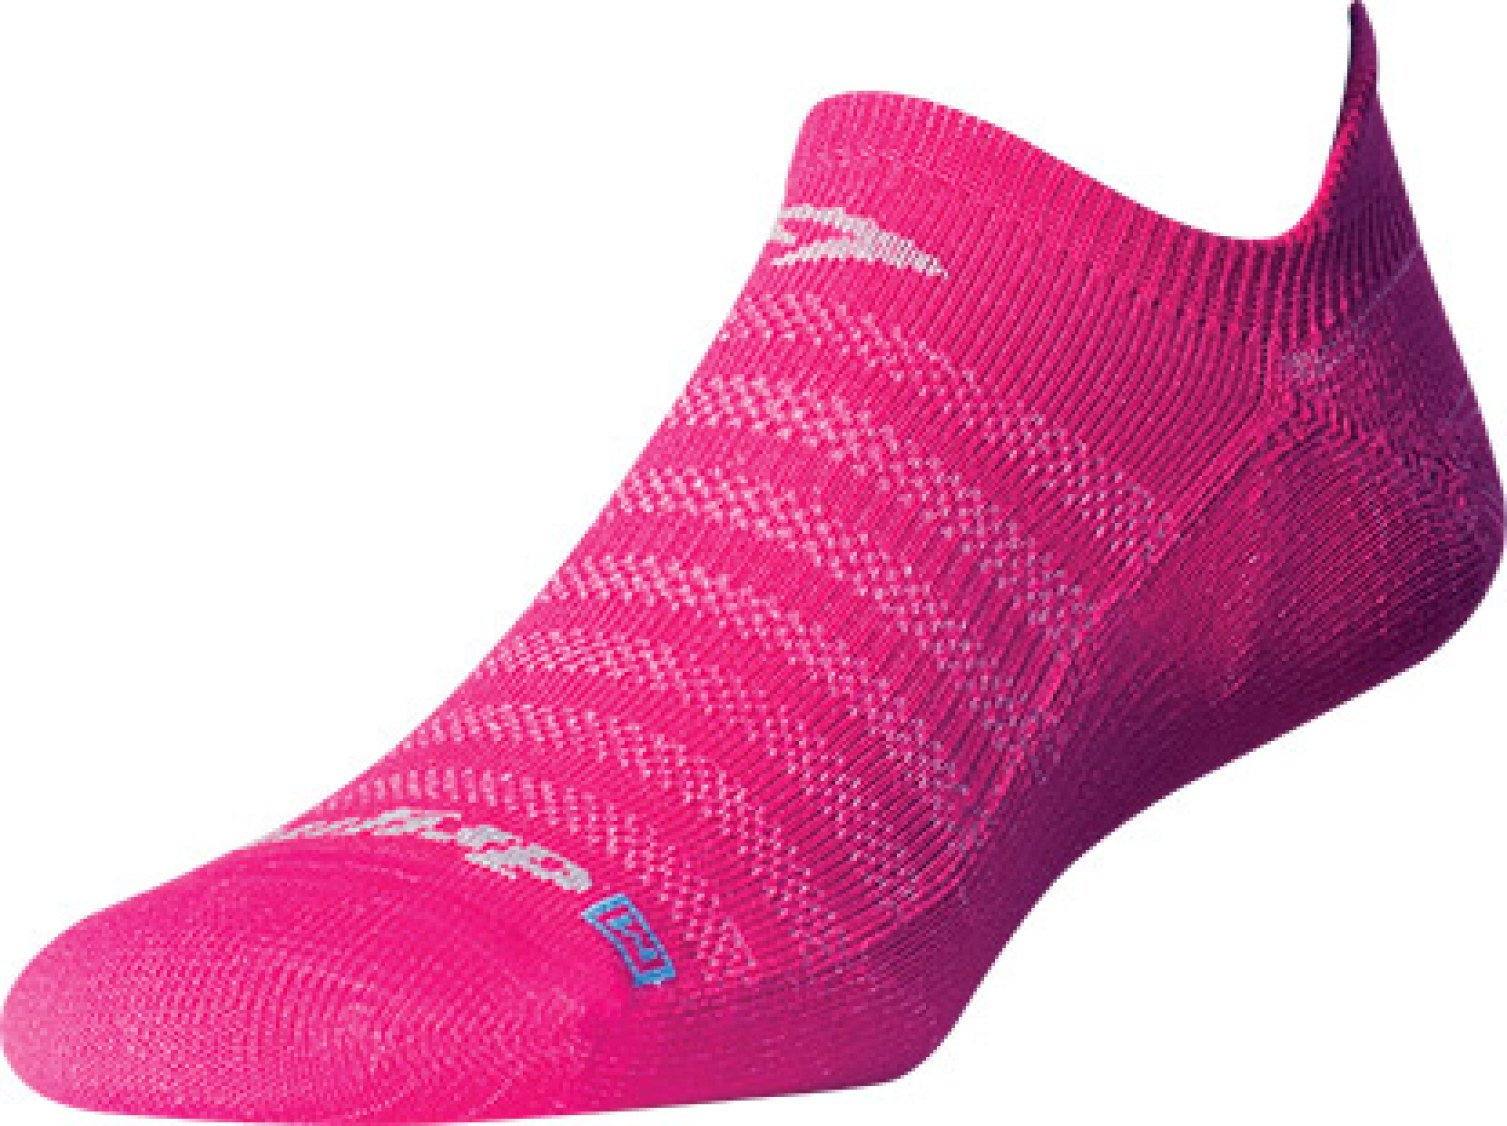 Drymax Running Lite Mesh No Show Tab, October Pink, W5-7 / M3.5-5.5 by Drymax